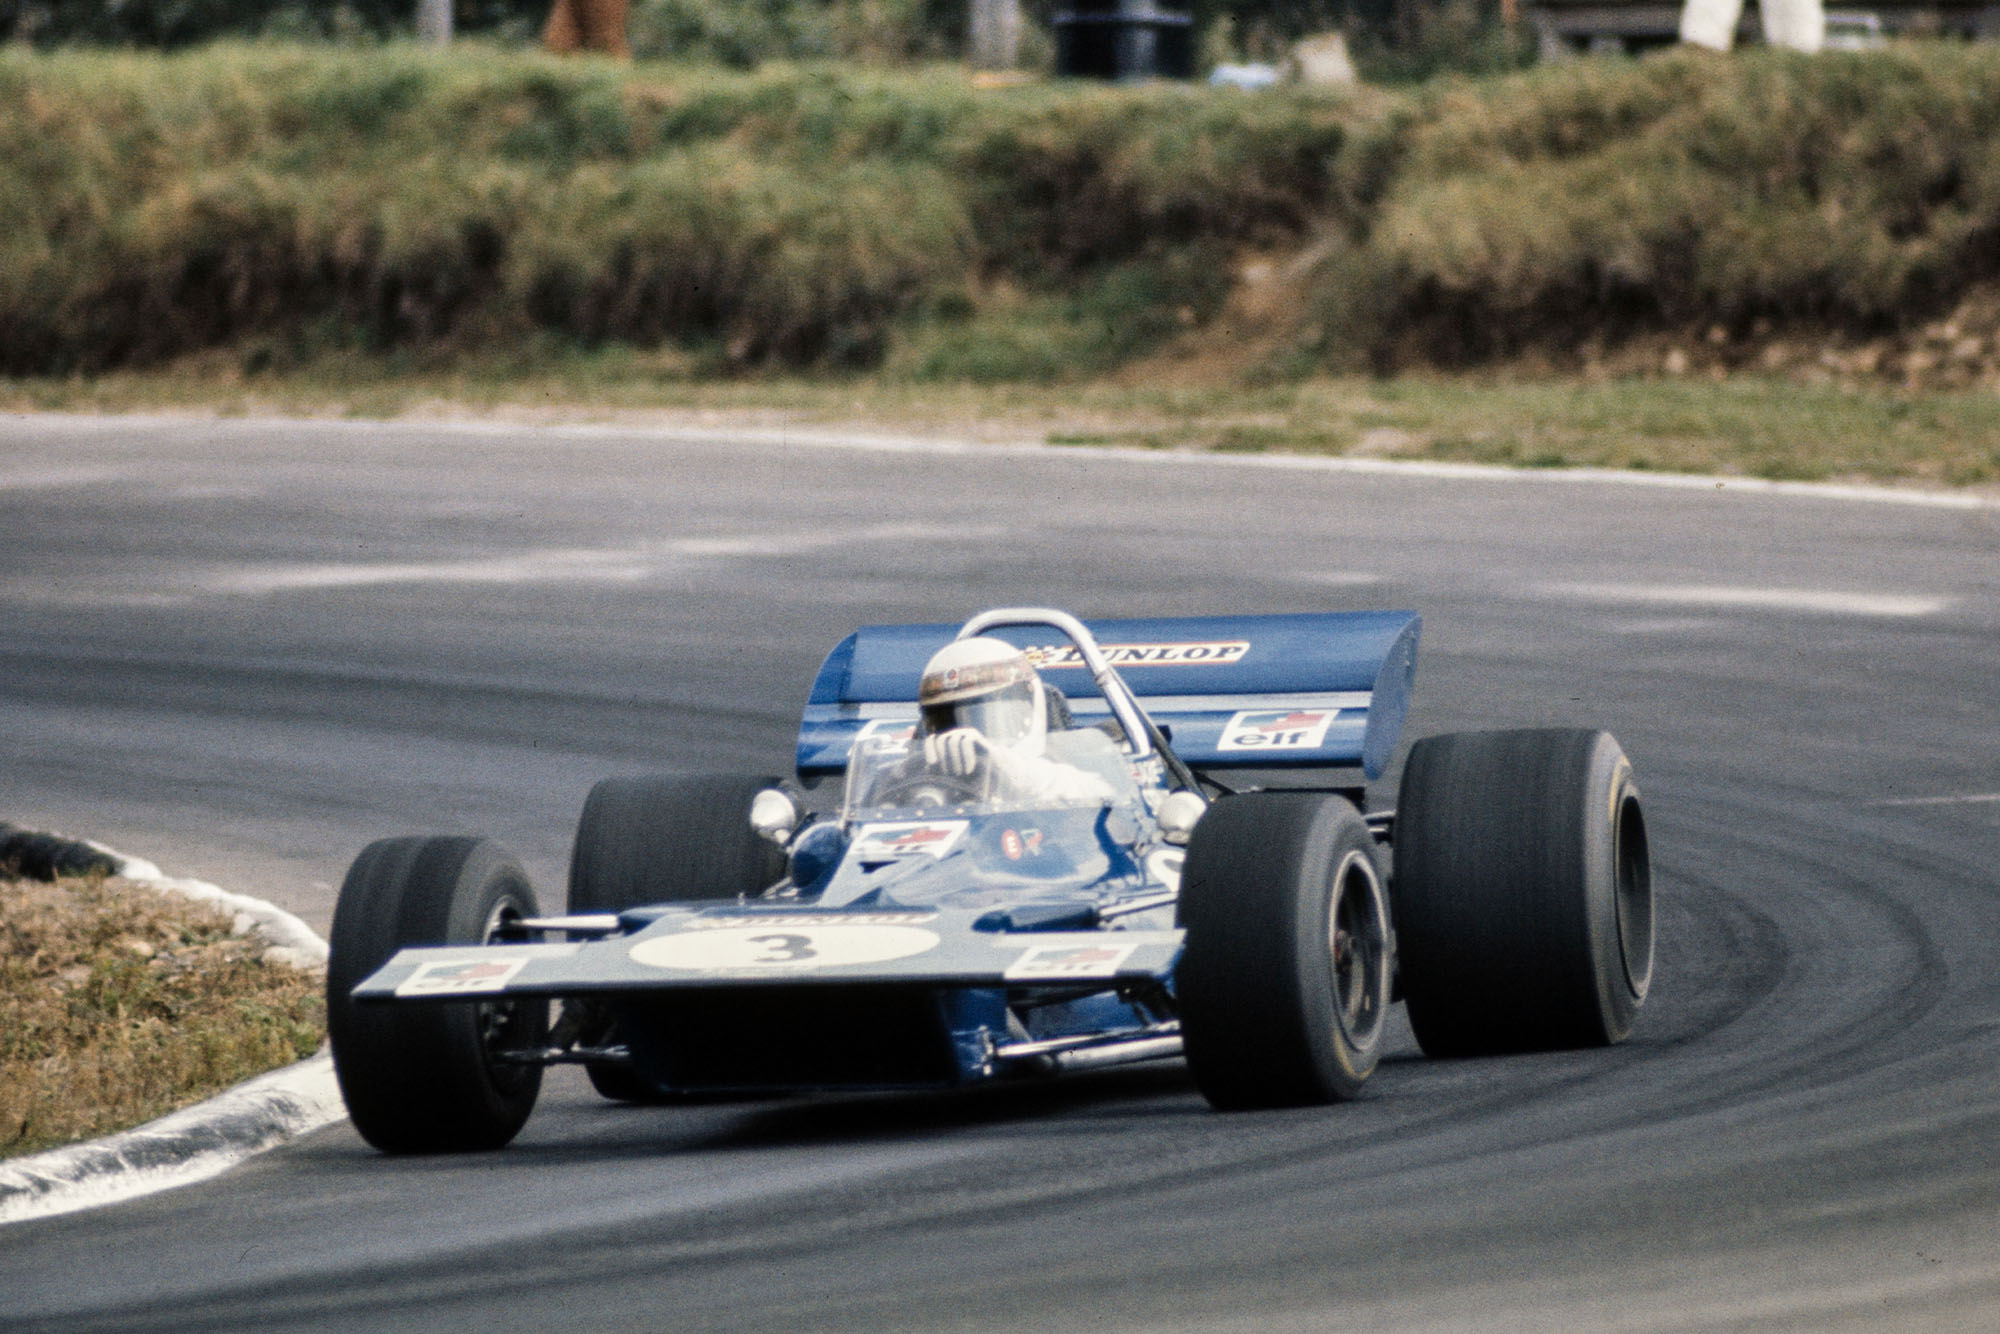 Jackie Stewart driving for Tyrrell at the 1970 Canadian Grand Prix.